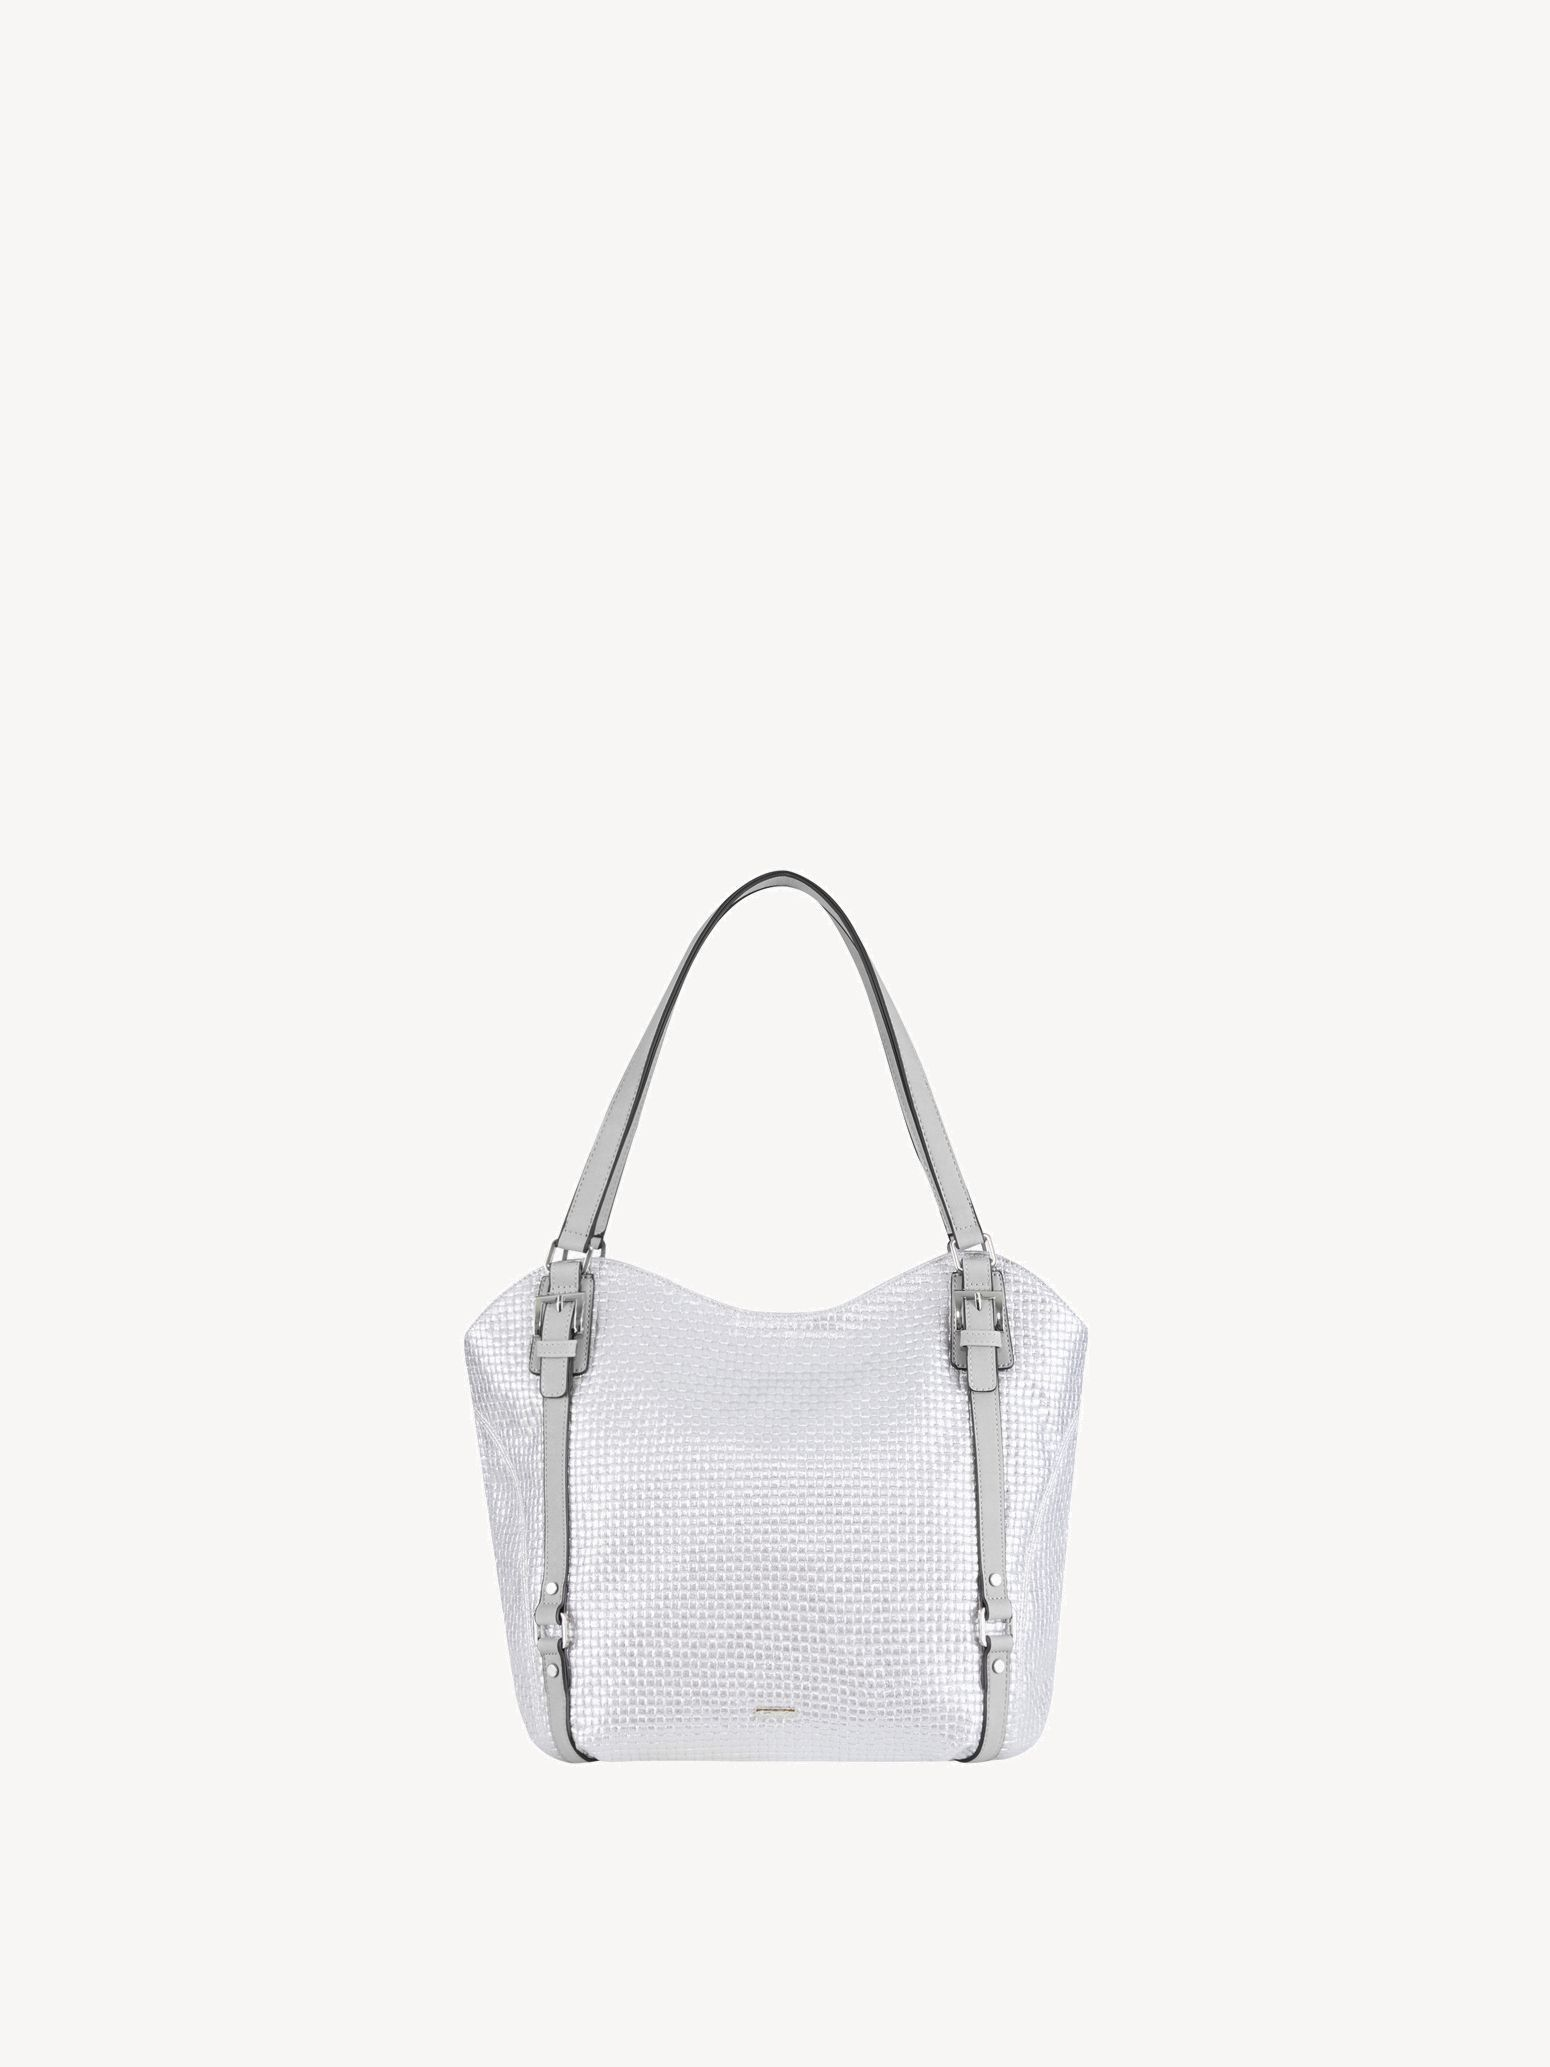 Shopping bag - silver